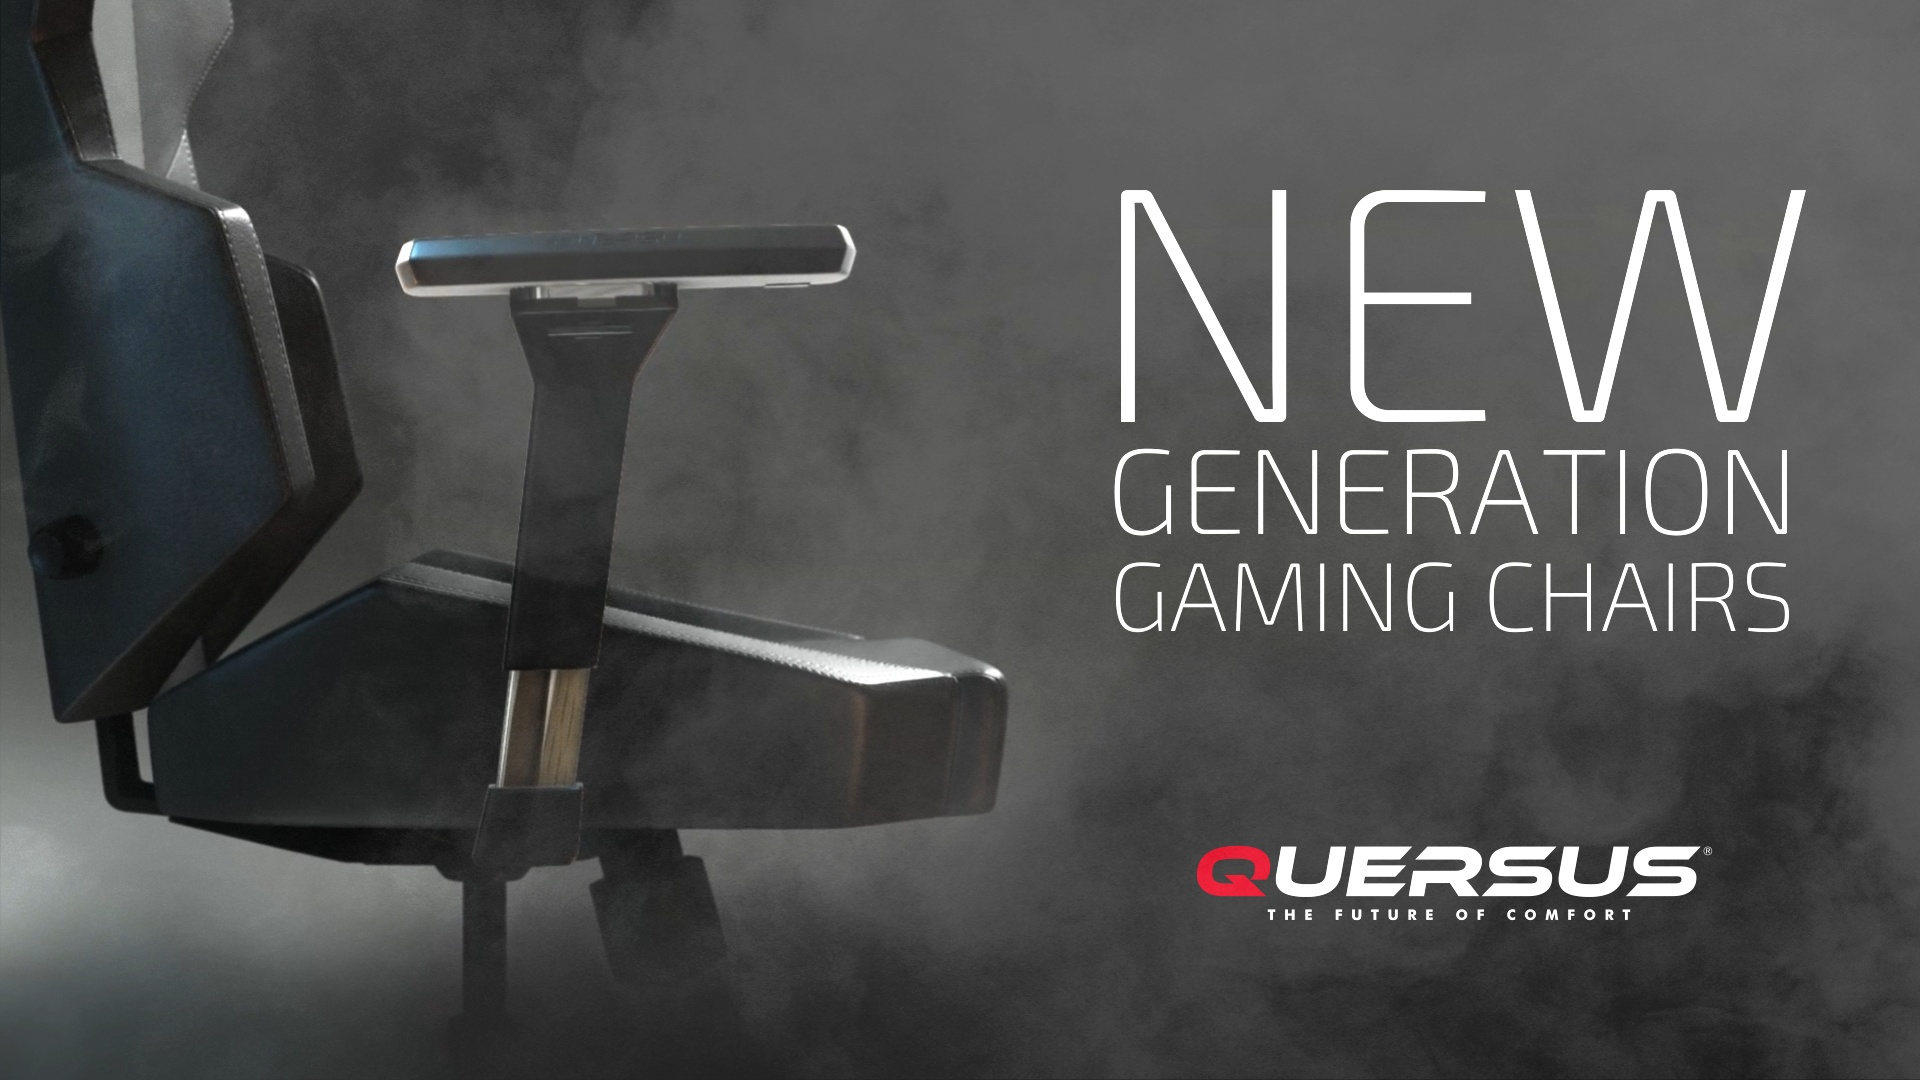 Quersus Gaming-Chairs